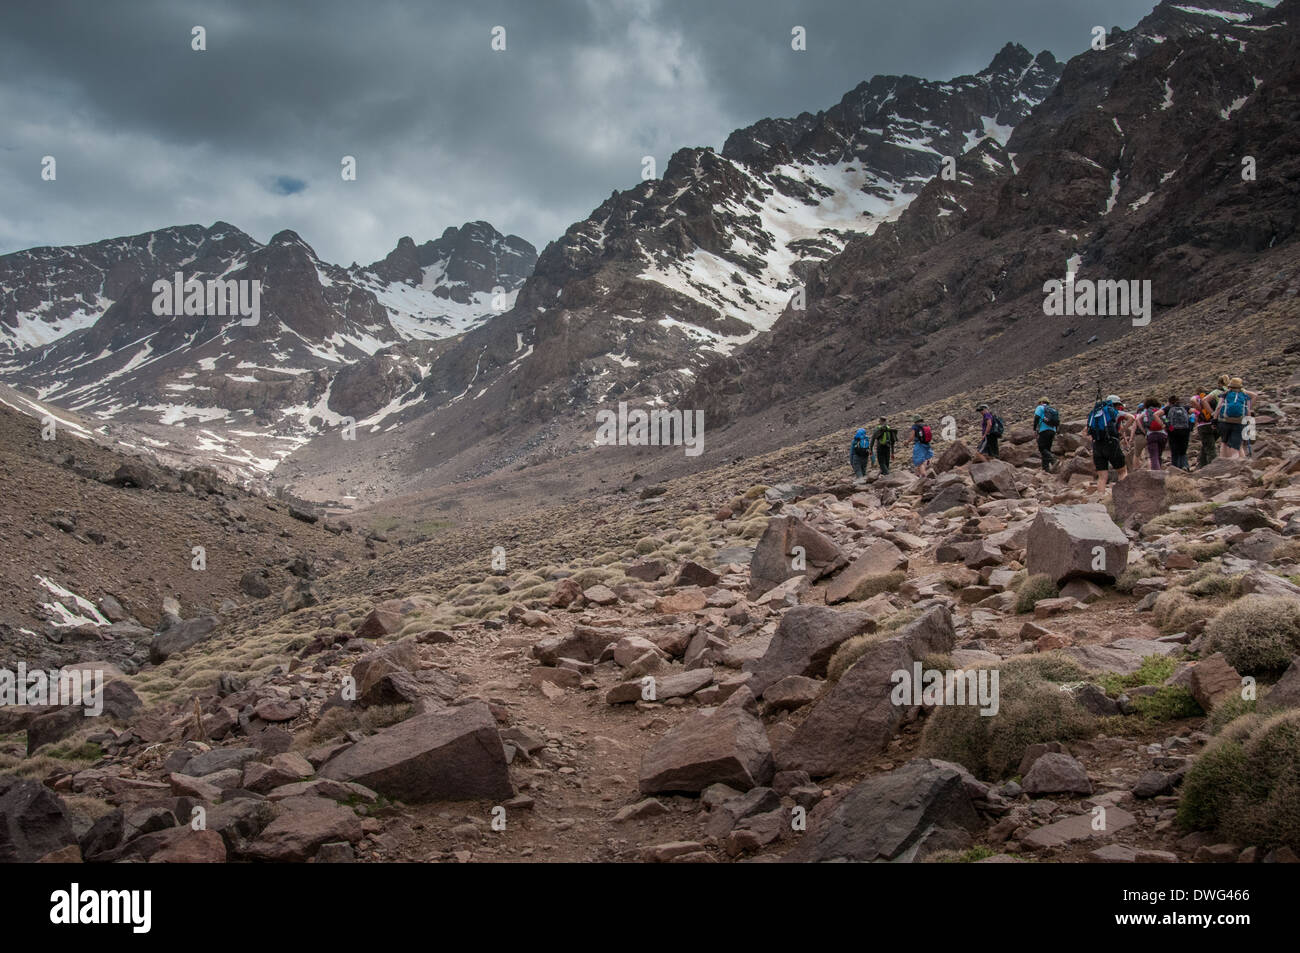 A group of trekkers approaching the Refuge du Toubkal in Morocco - Stock Image